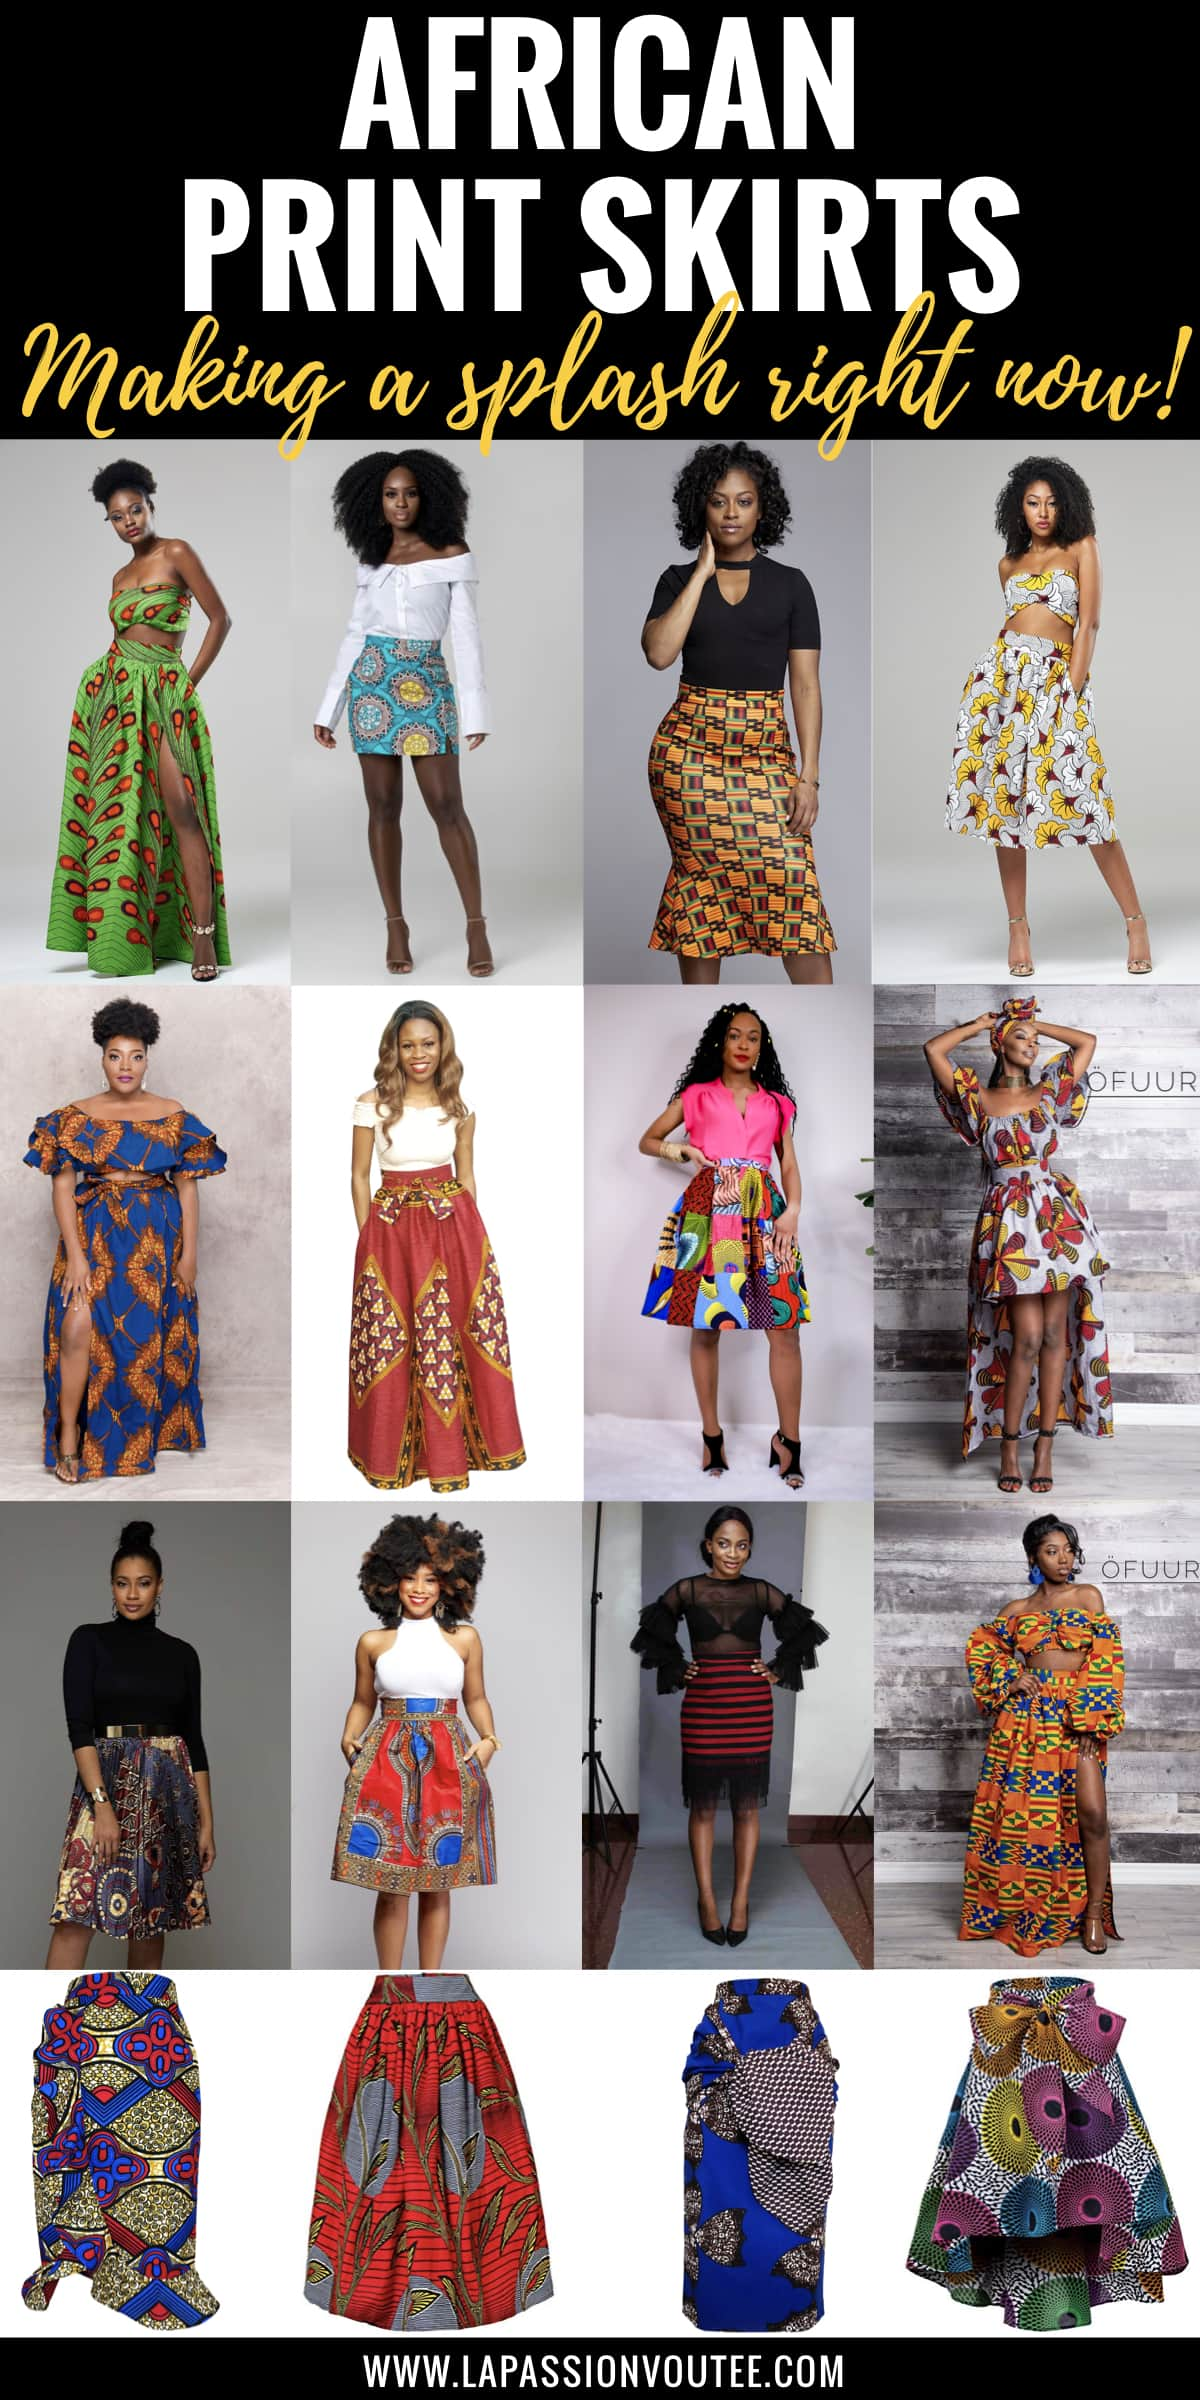 23 Hottest African Print Skirts | Who would have thought that African print clothes would look this good? Check out this unique selection from the best African fashion designers. From ankara Dutch wax, Kente, to Kitenge and Dashiki. All your favorite styles in one place (+find out where to get them). Click to see all! Ankara, Dutch wax, Kente, Kitenge, Dashiki, African print dress, African fashion, African women dresses, African prints, Nigerian style, Ghanaian fashion, Senegal fashion, Kenya fashion, Nigerian fashion #africanprint #ankarastyles